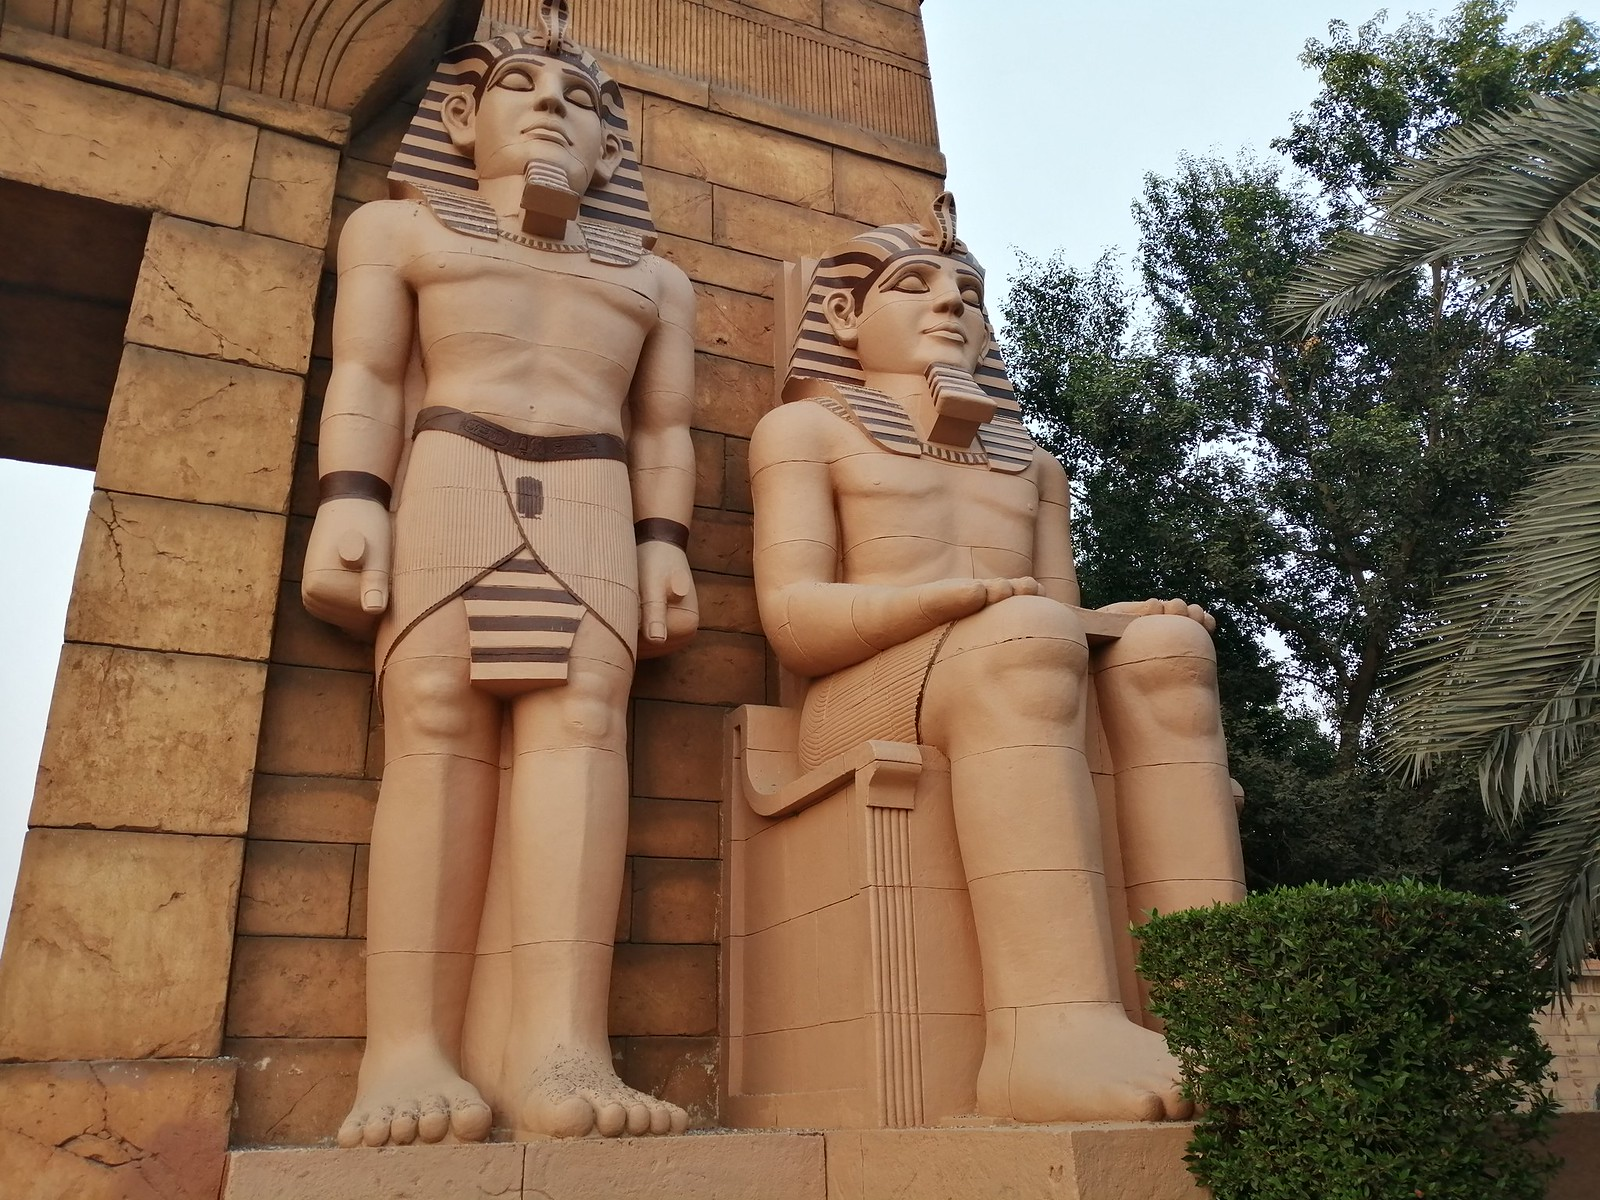 Statues image with Auto Mode on Huawei Y9 2019